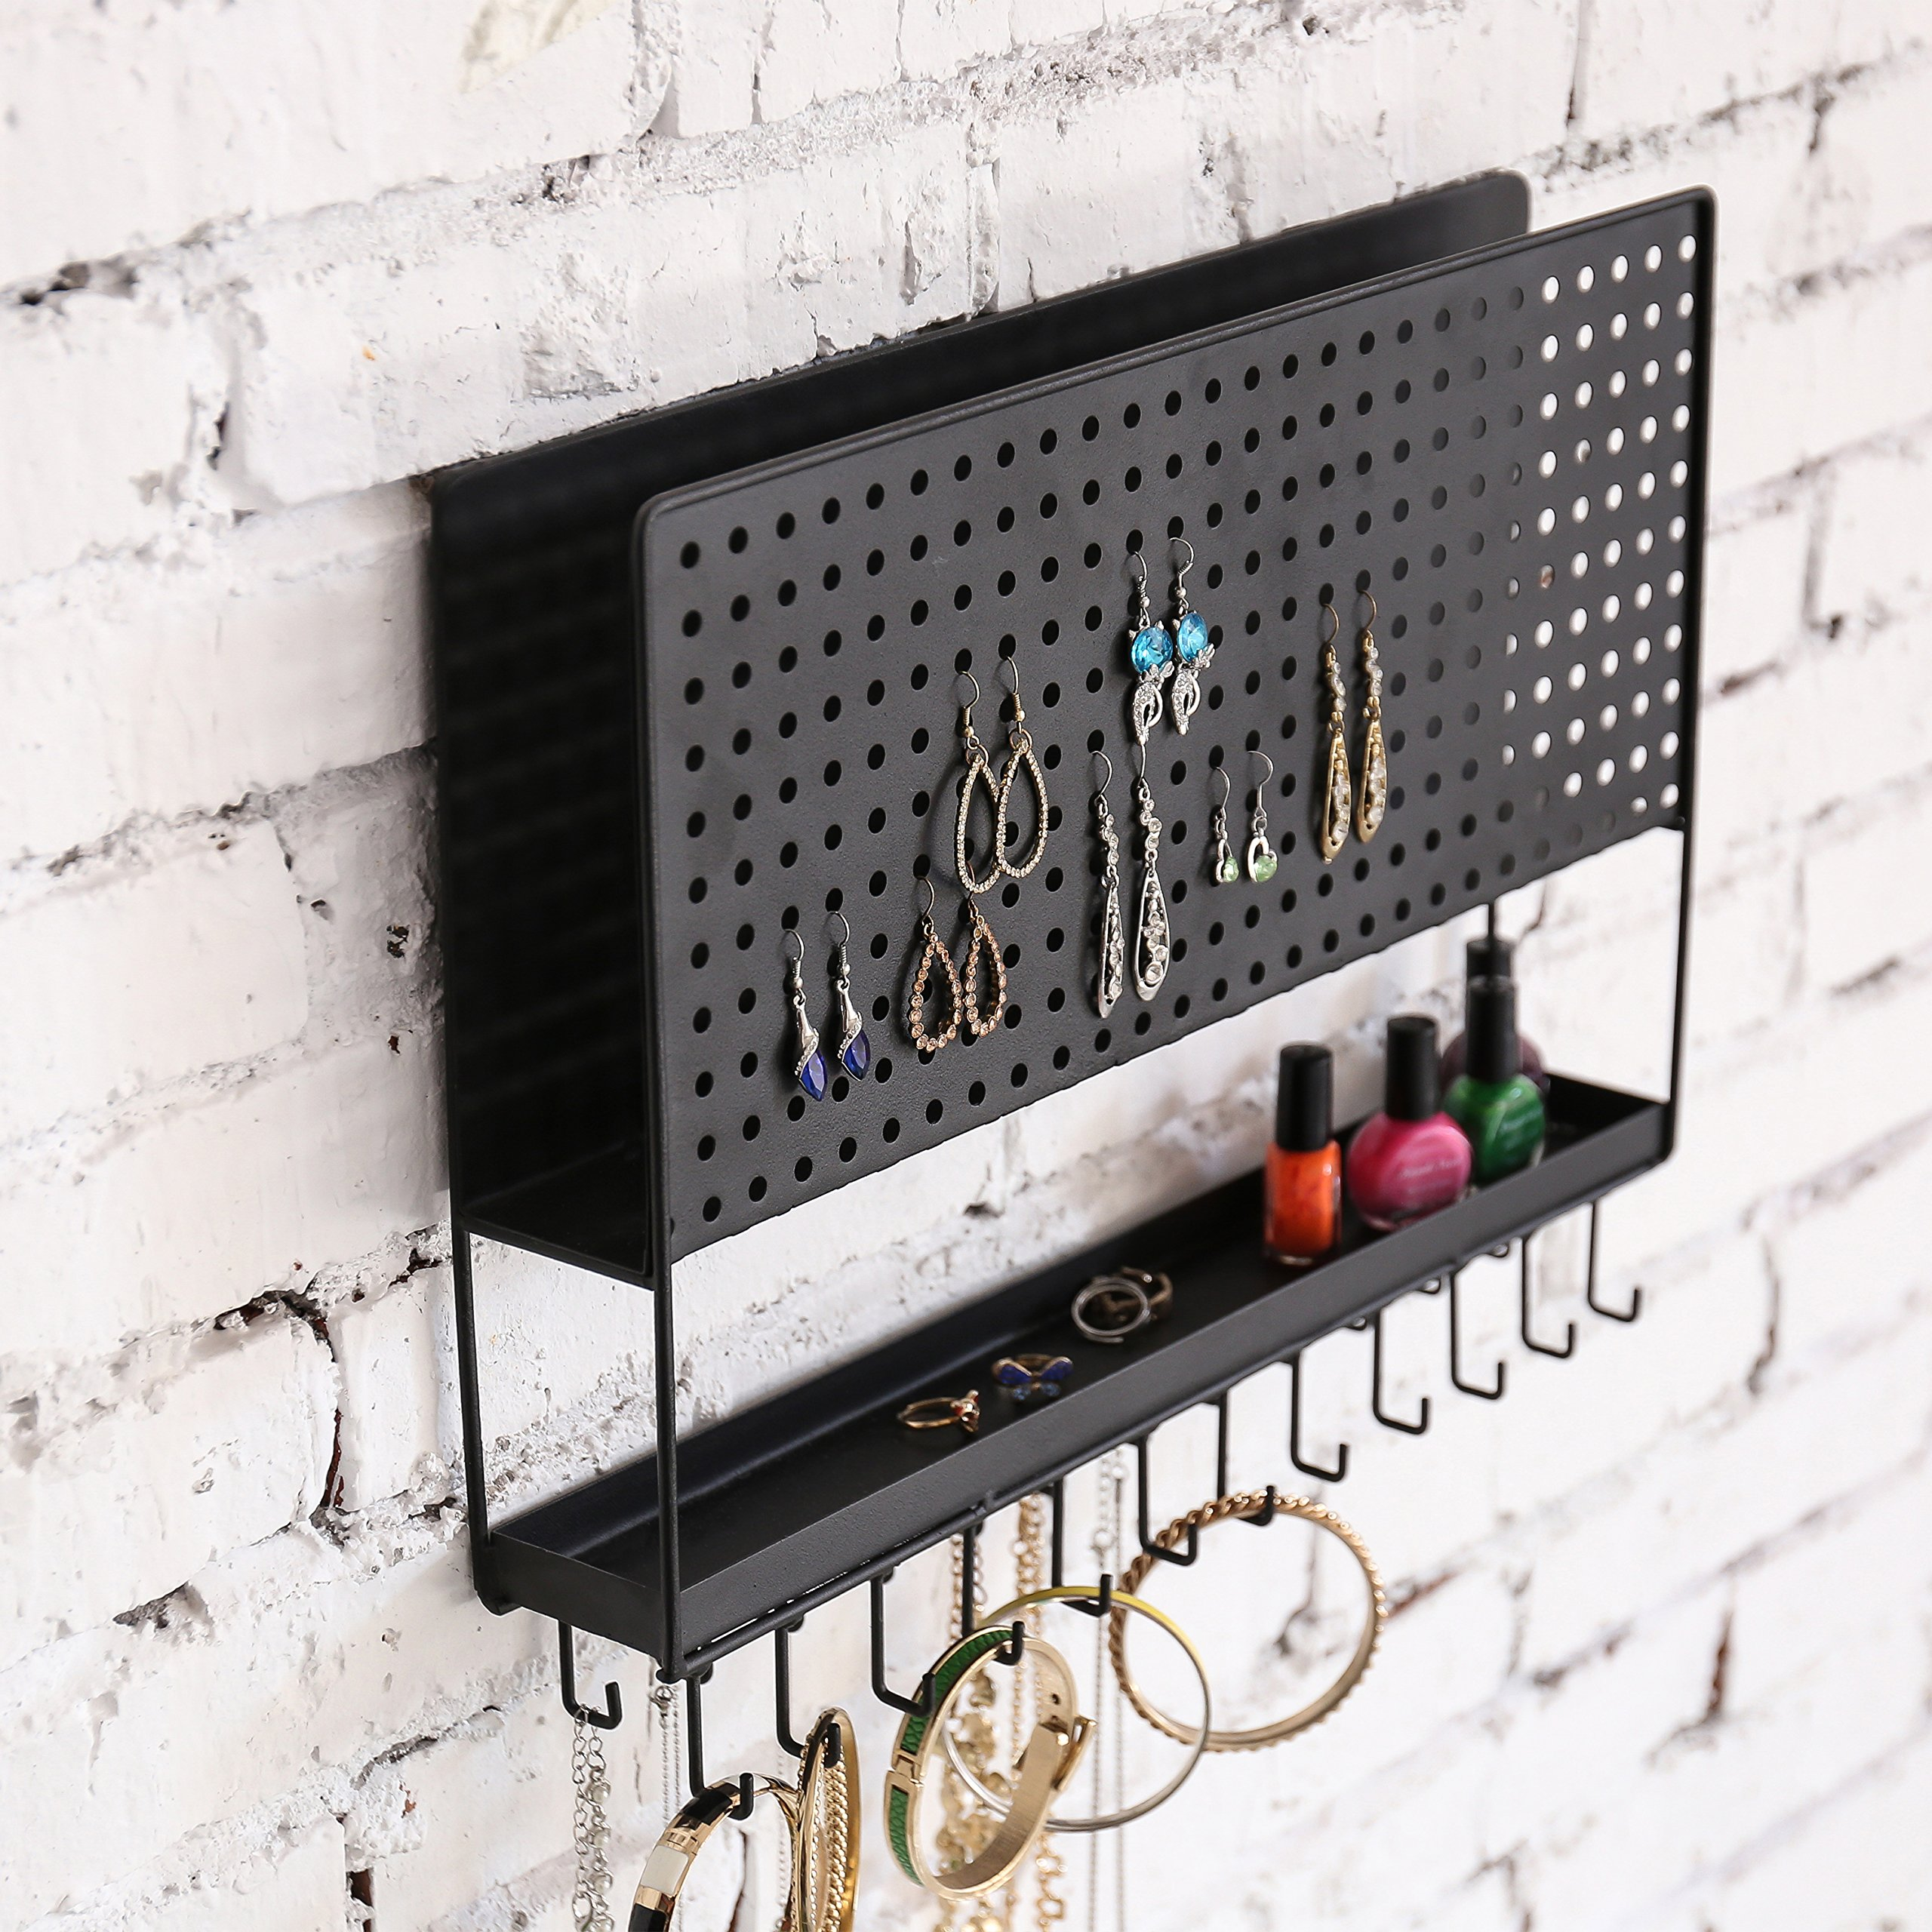 MyGift Wall-Mounted Metal Jewelry Rack w/ Perforated Earring Panel, Necklace & Bracelet Hooks & Ring Tray